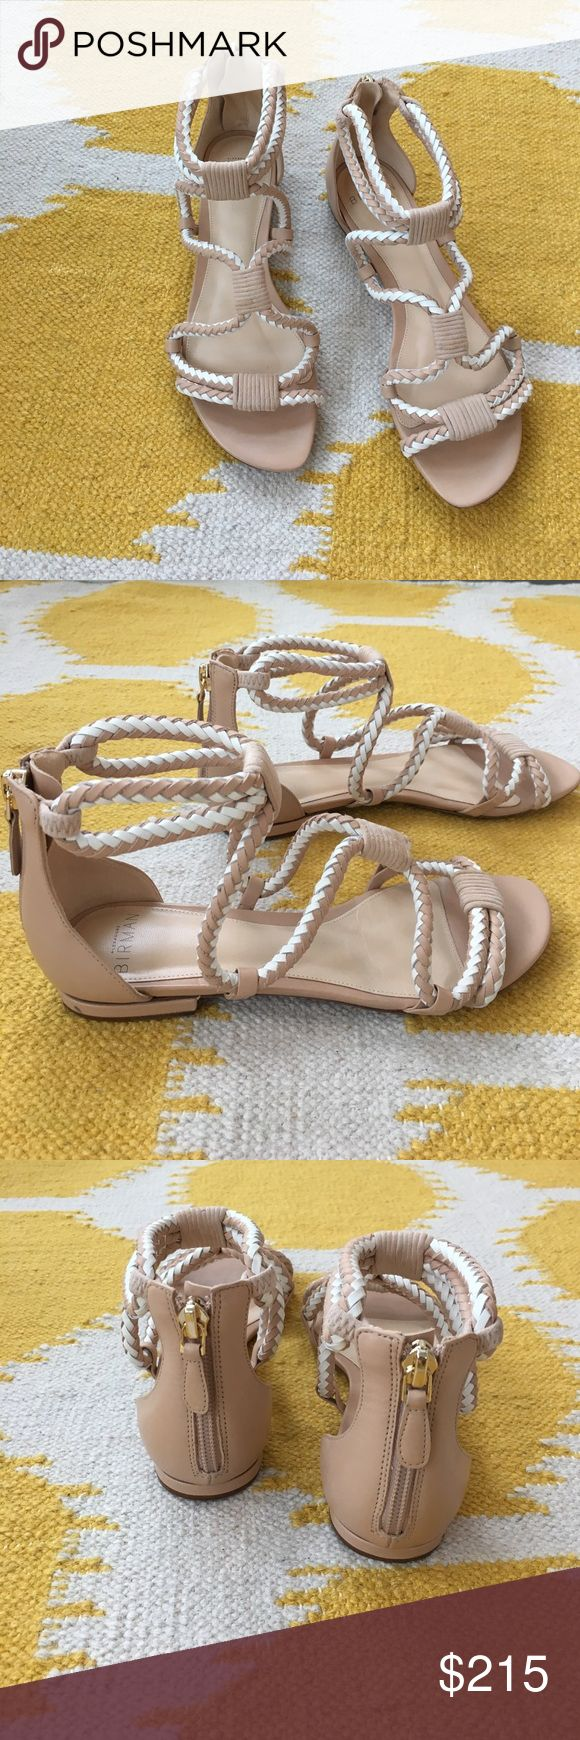 Beautiful woven Alexandre Birman sandals White and nude braided gladiator like sandals by Alexandre Birman.  Suede accents.  Zipper in the back.  Worn once.  Size 35 Alexandre Birman Shoes Sandals